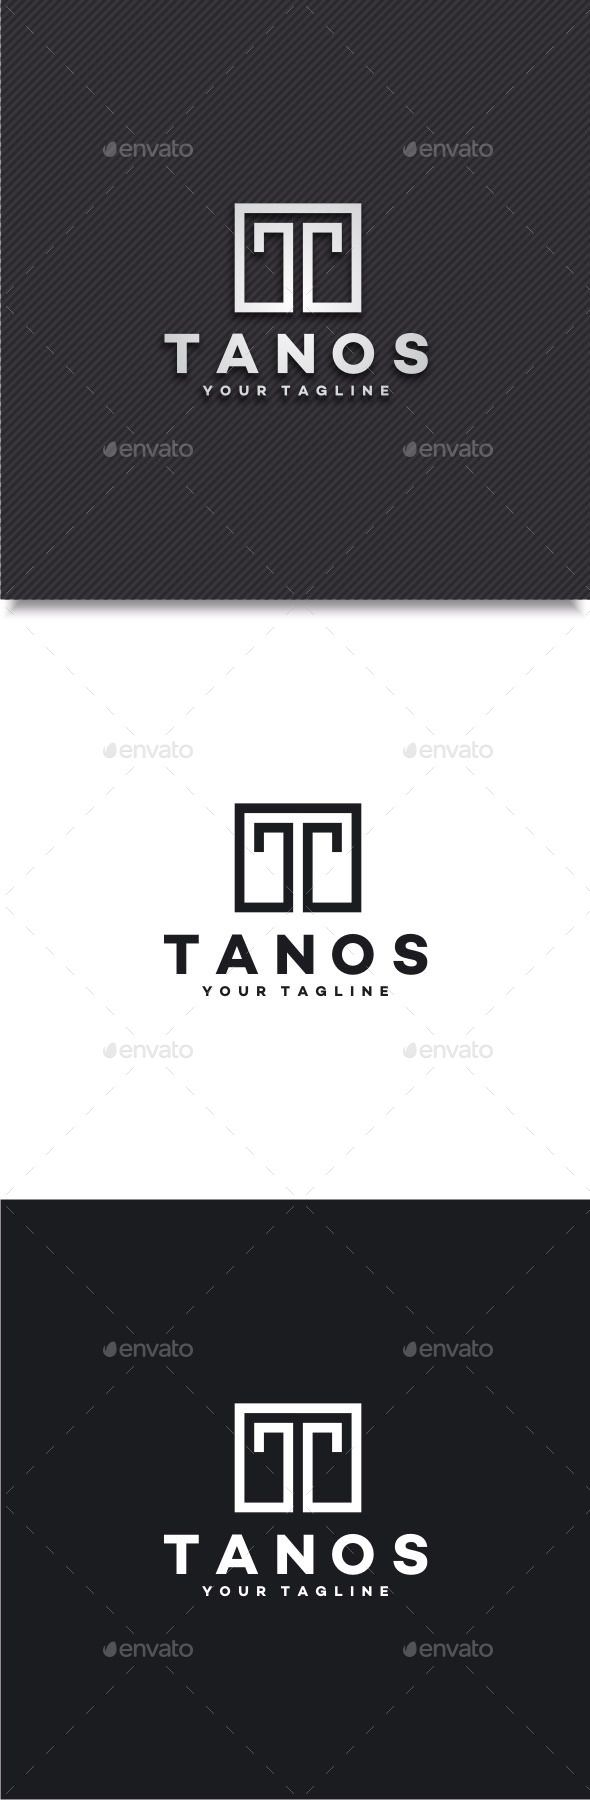 Tanos letter t logo letter logo logo templates and logos tanos letter t logo thecheapjerseys Image collections